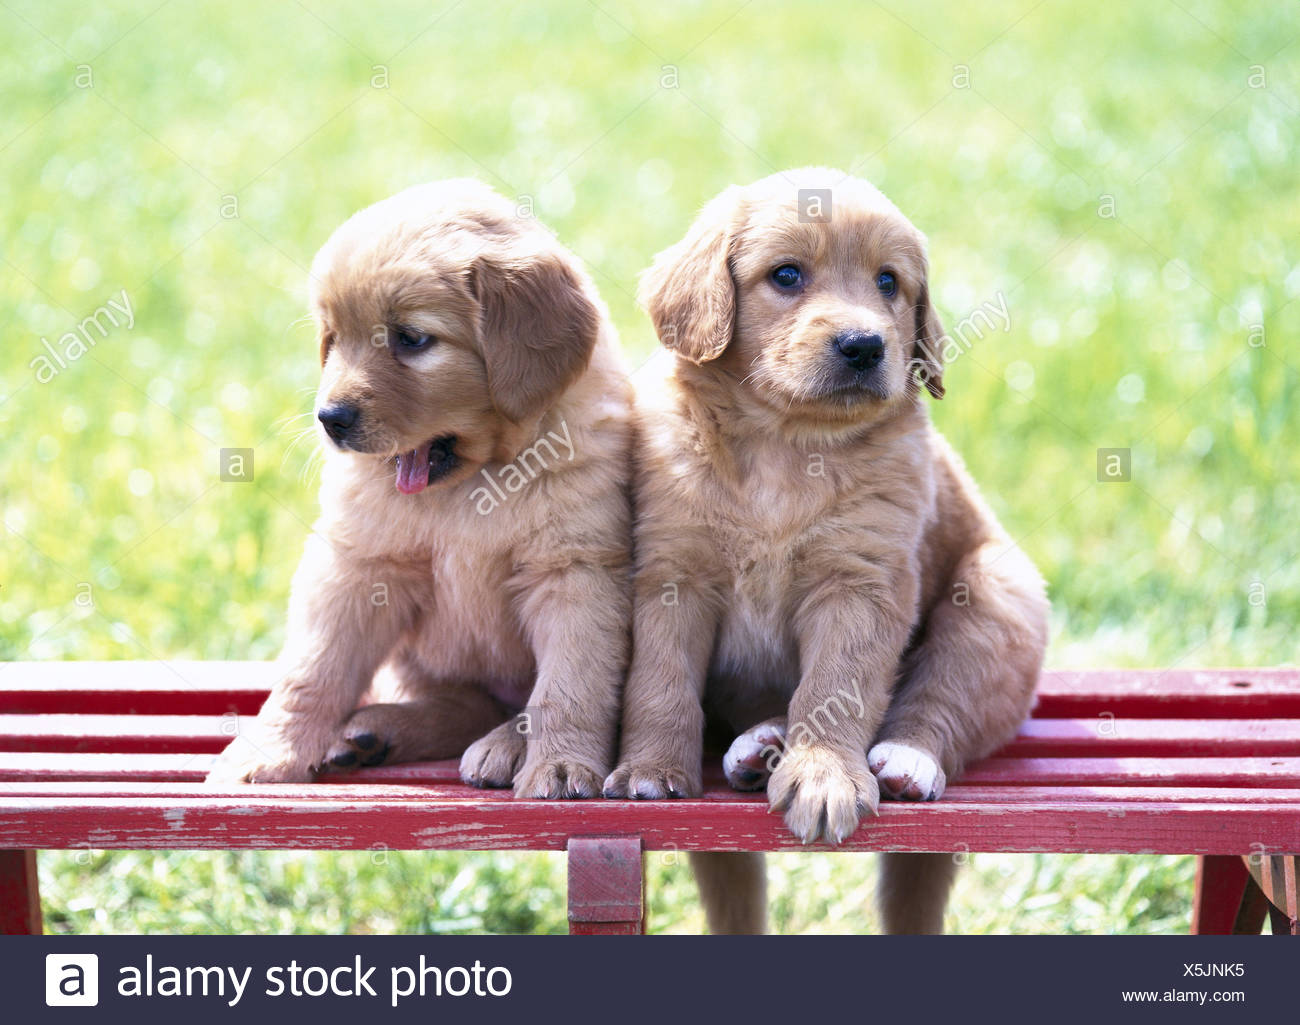 Hybrid Dogs Puppies High Resolution Stock Photography And Images Alamy